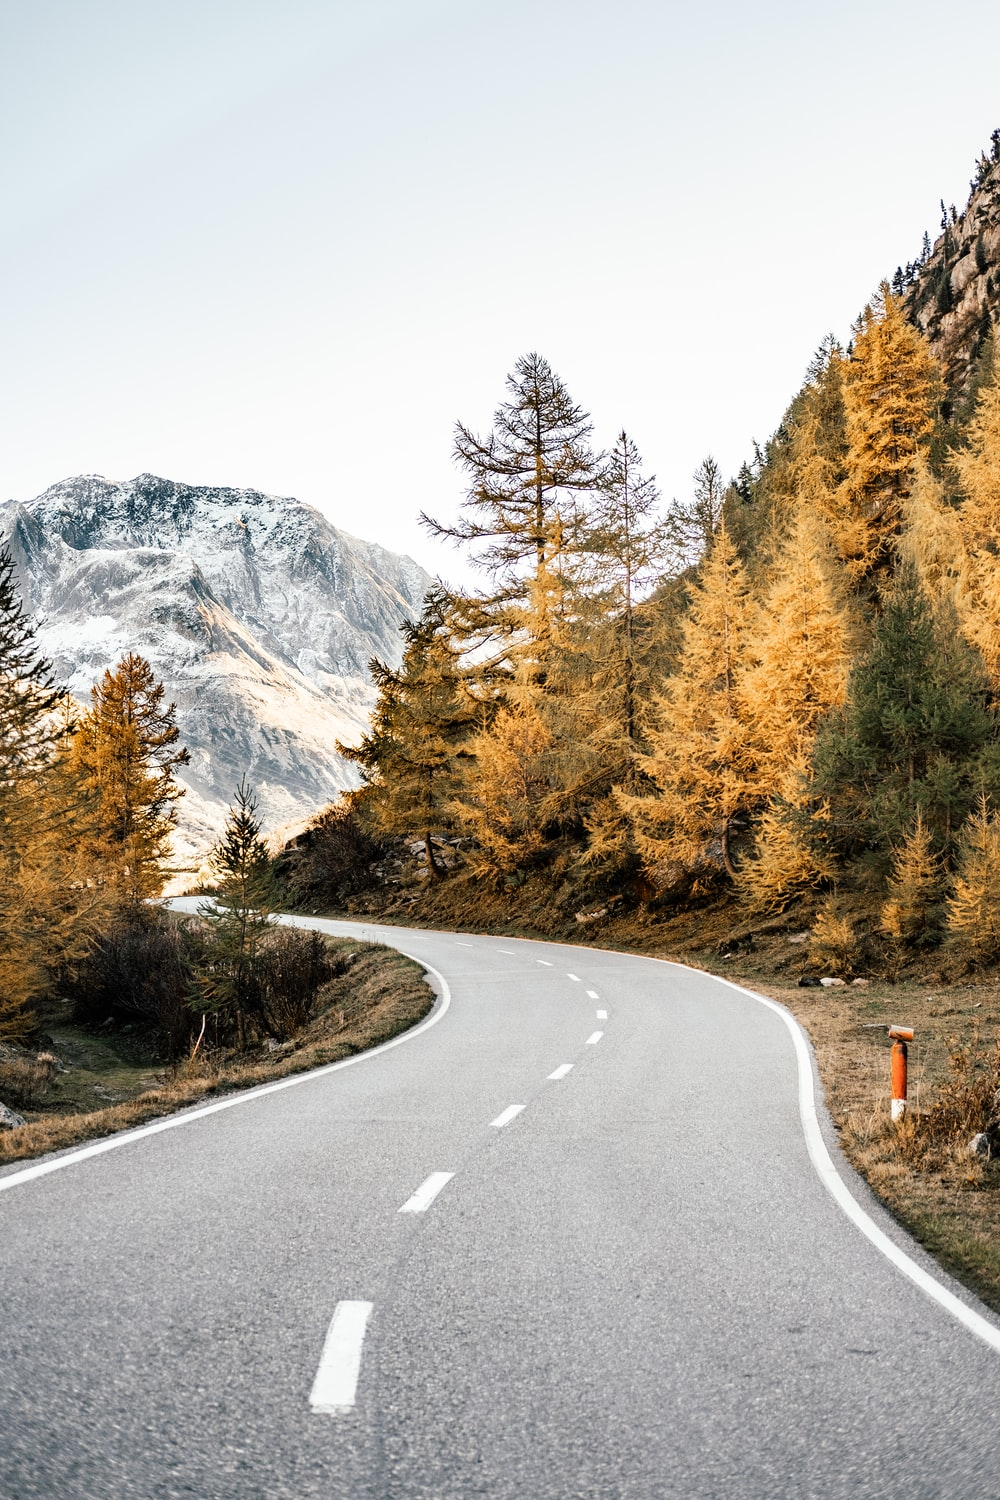 winding road near mountains and forest during daytime